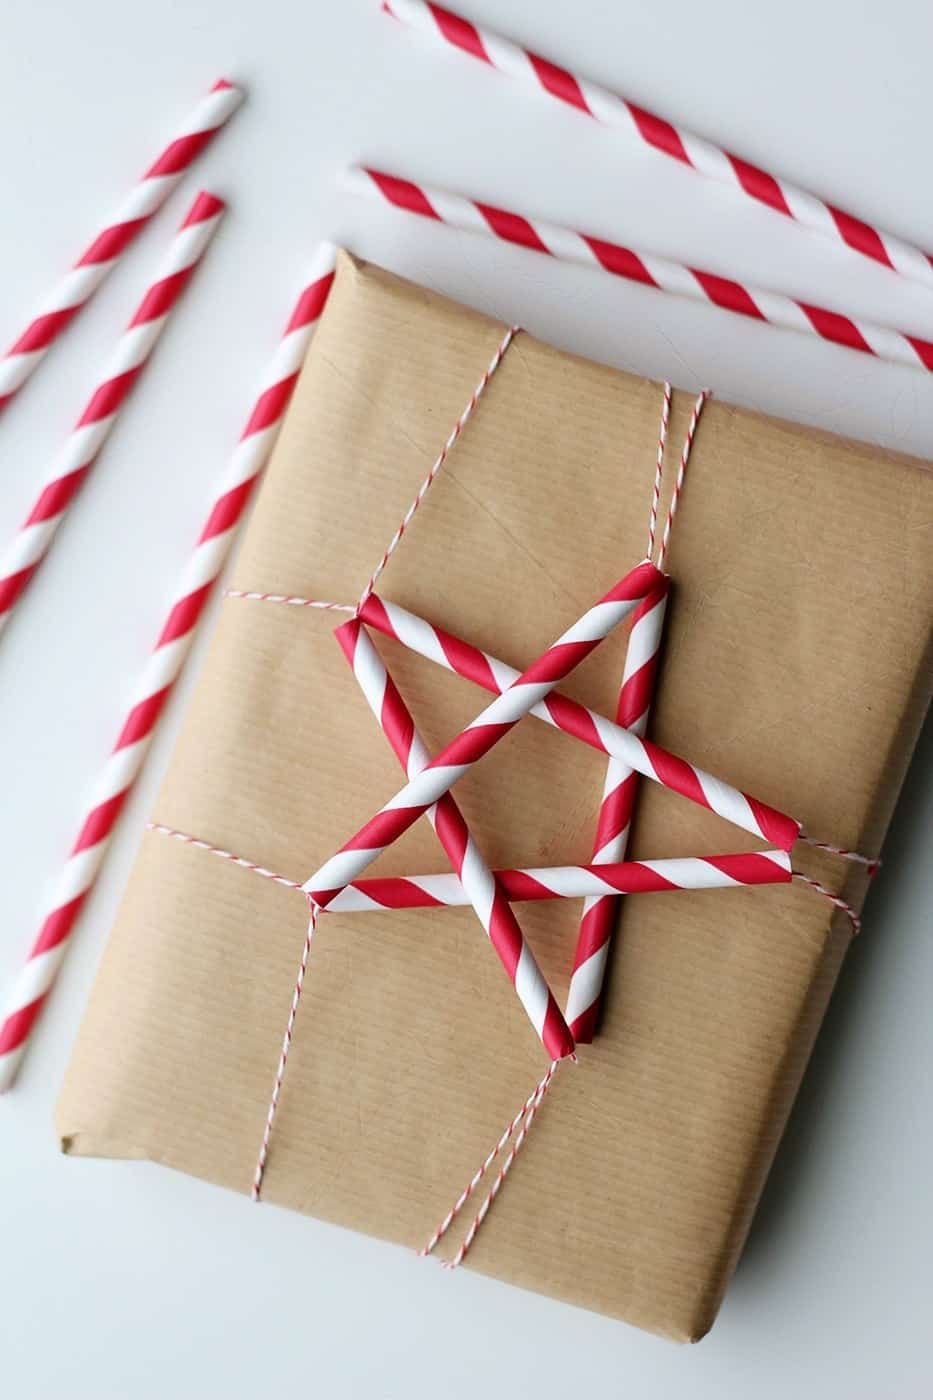 27 Christmas Gift Wrapping Ideas You'll Want To Try This Year | The Mummy Front